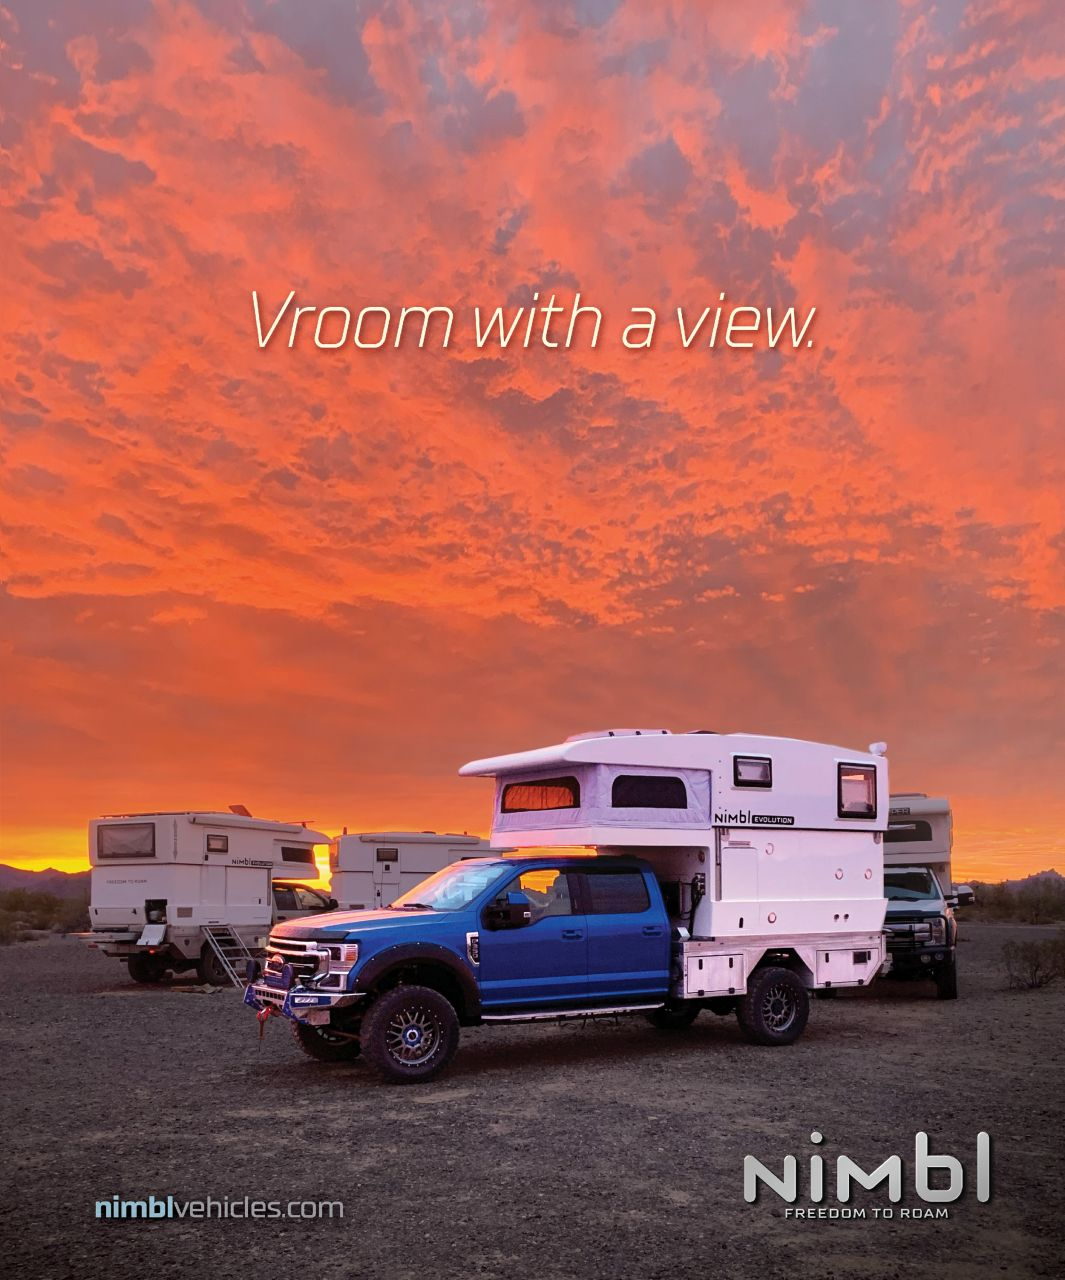 Luxury Brand Advertising Campaign for Nimbl_Vroom